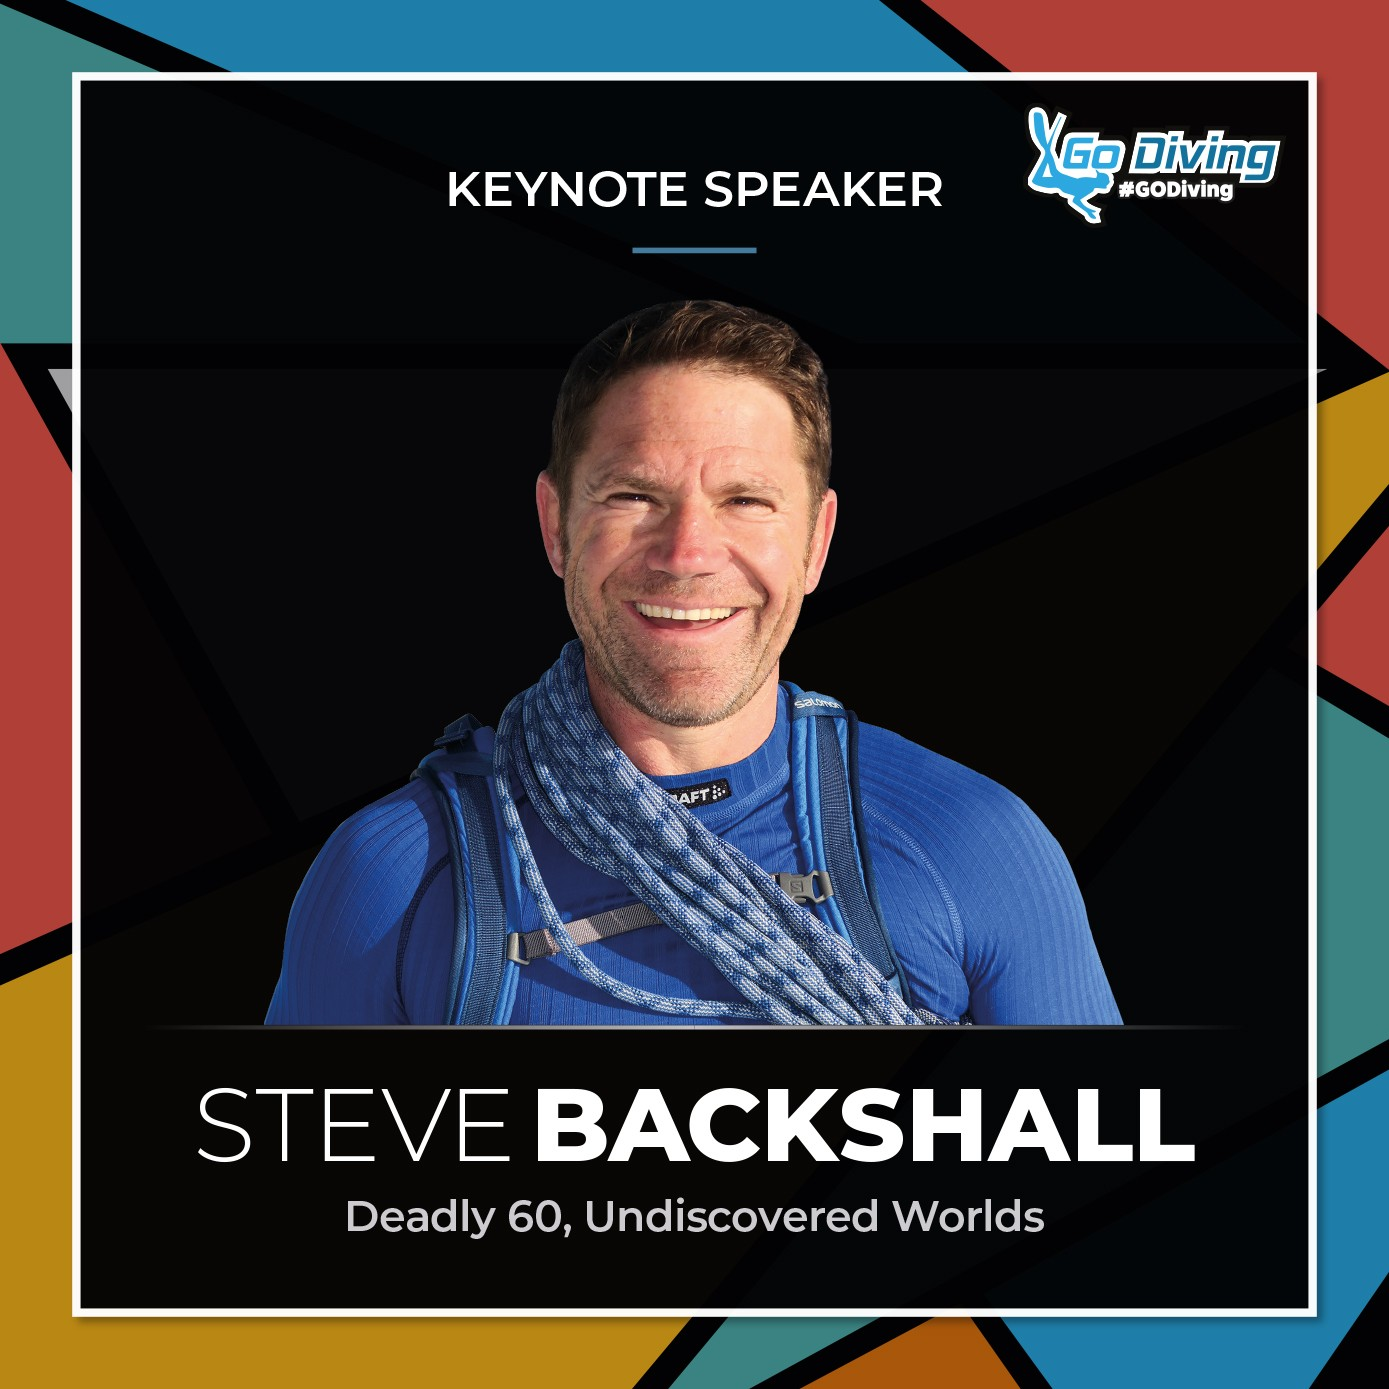 See Steve Backshall live on stage at the GO Diving Show 1